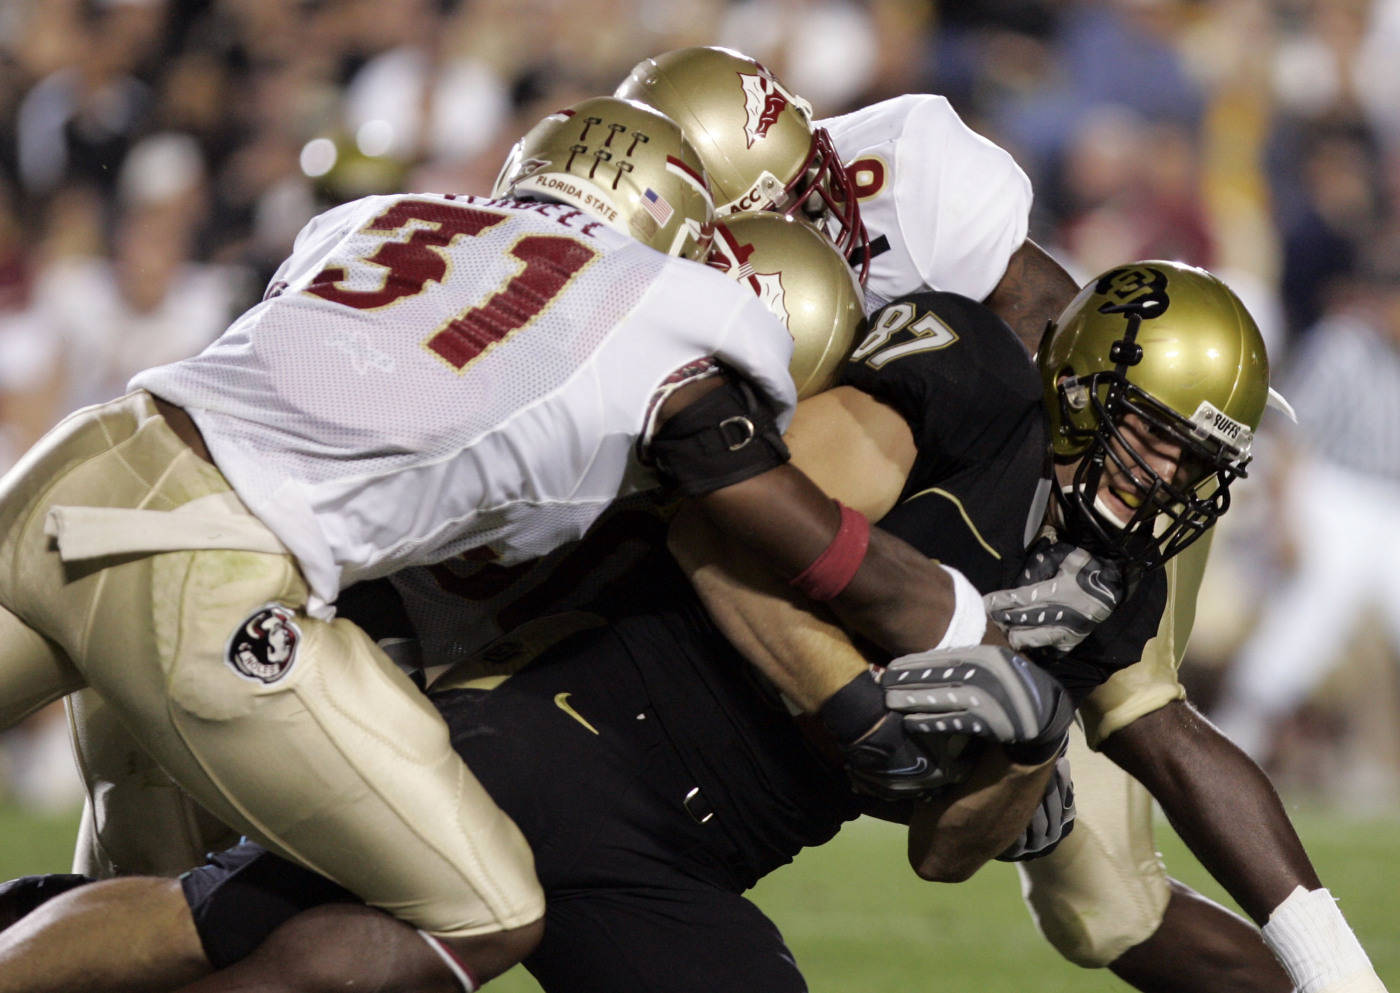 Colorado tight end Riar Geer, right, is tackled after catching a pass by Florida State defenders, from left front to back, Toddrick Verdell, Derek Nicholson and J.R. Bryant in the second quarter. (AP Photo/Jack Dempsey)[